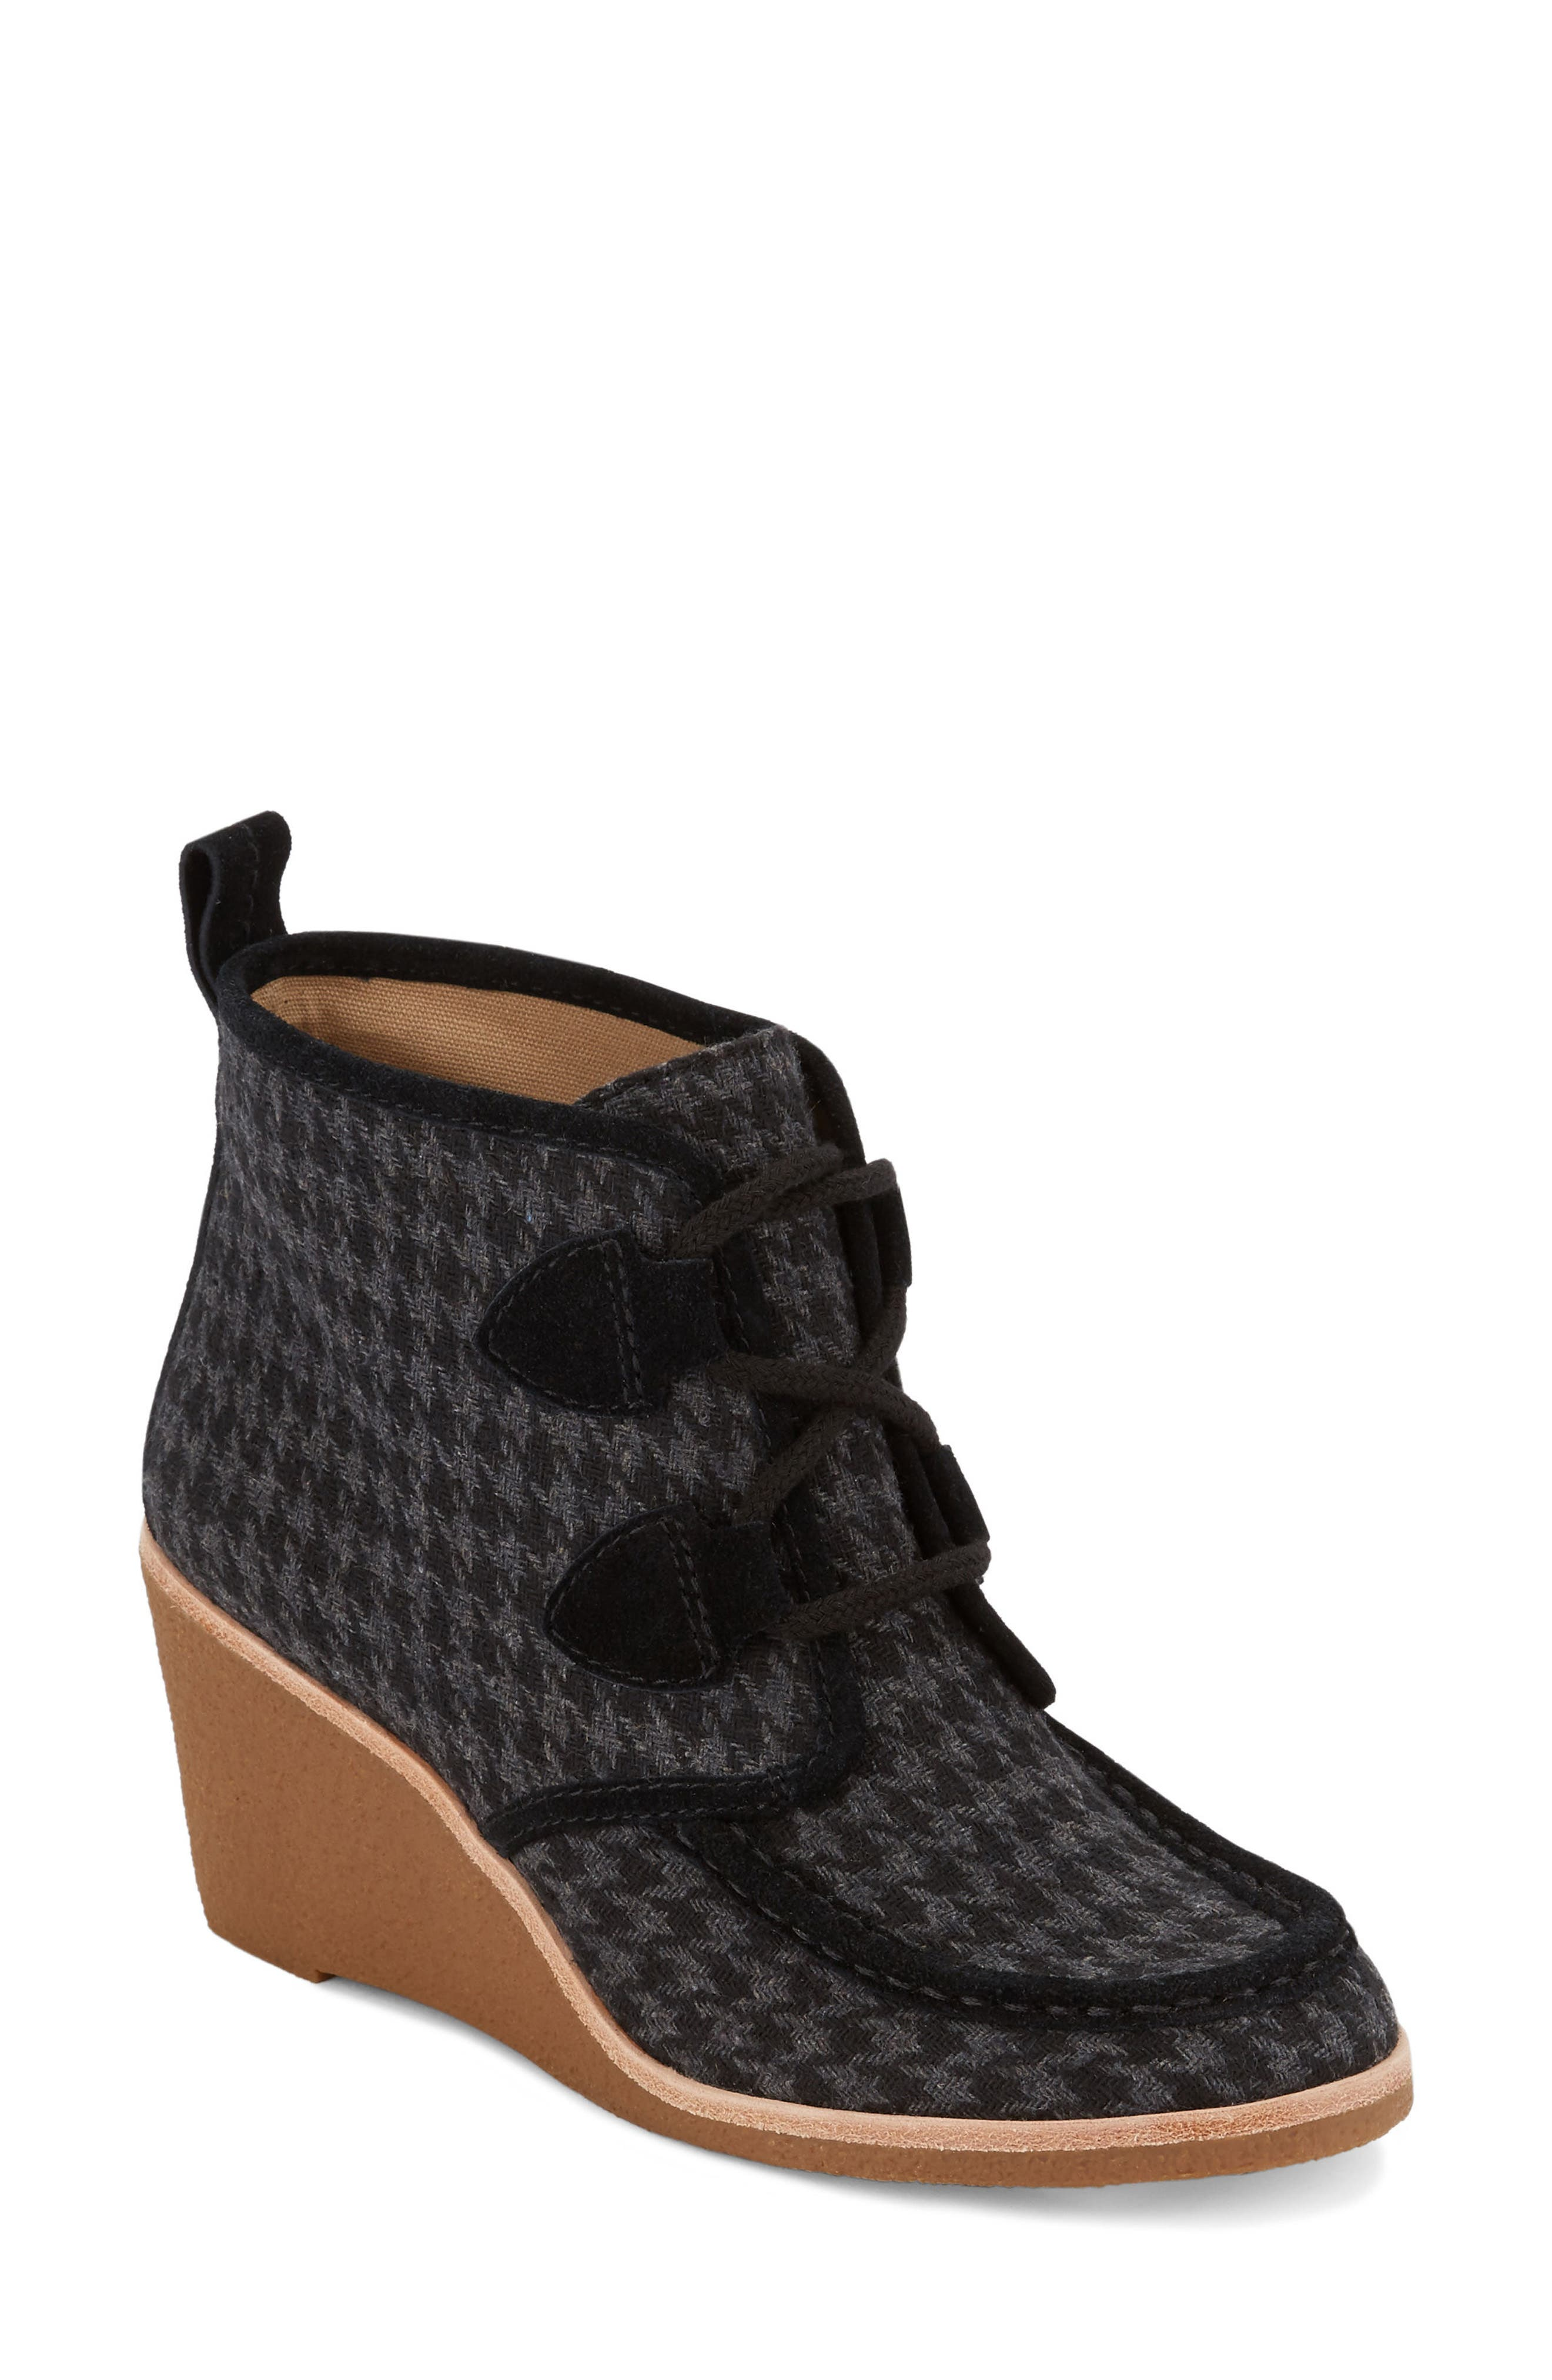 Rosa Wedge Bootie,                             Main thumbnail 1, color,                             Black Houndstooth Fabric